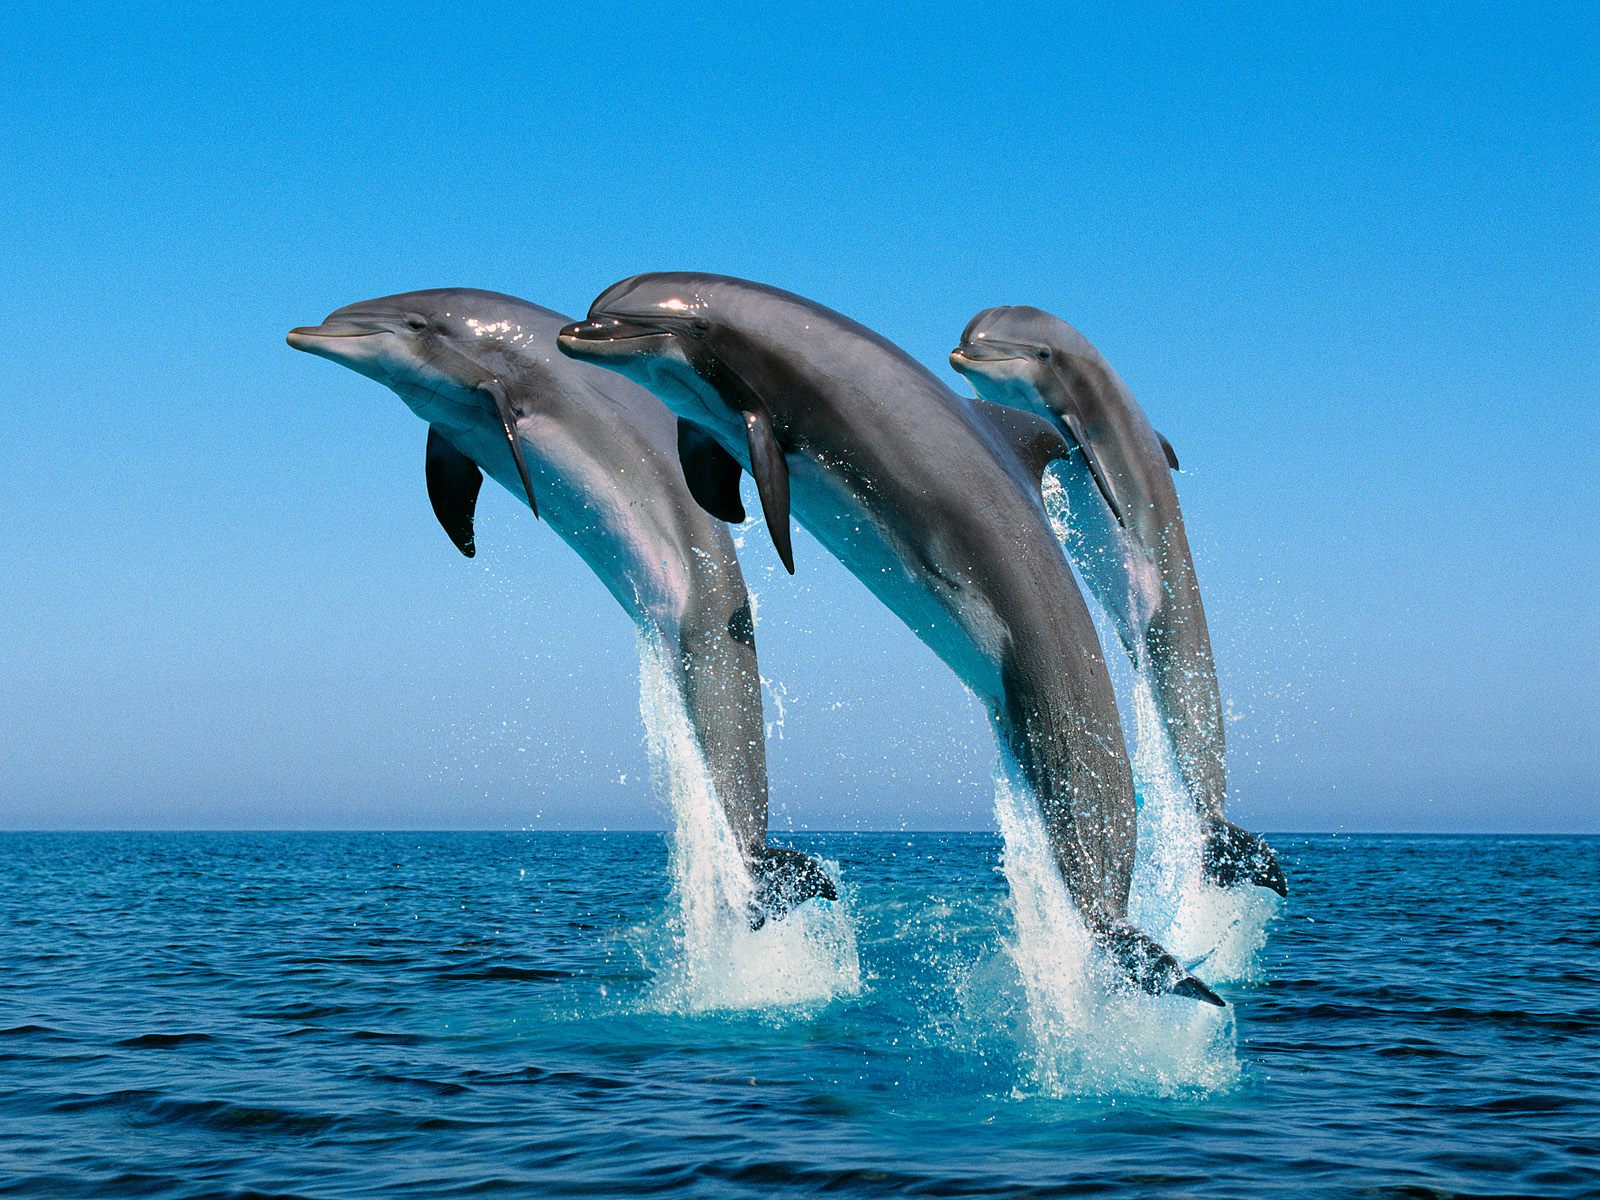 3d wallpapers hd animals - photo #31